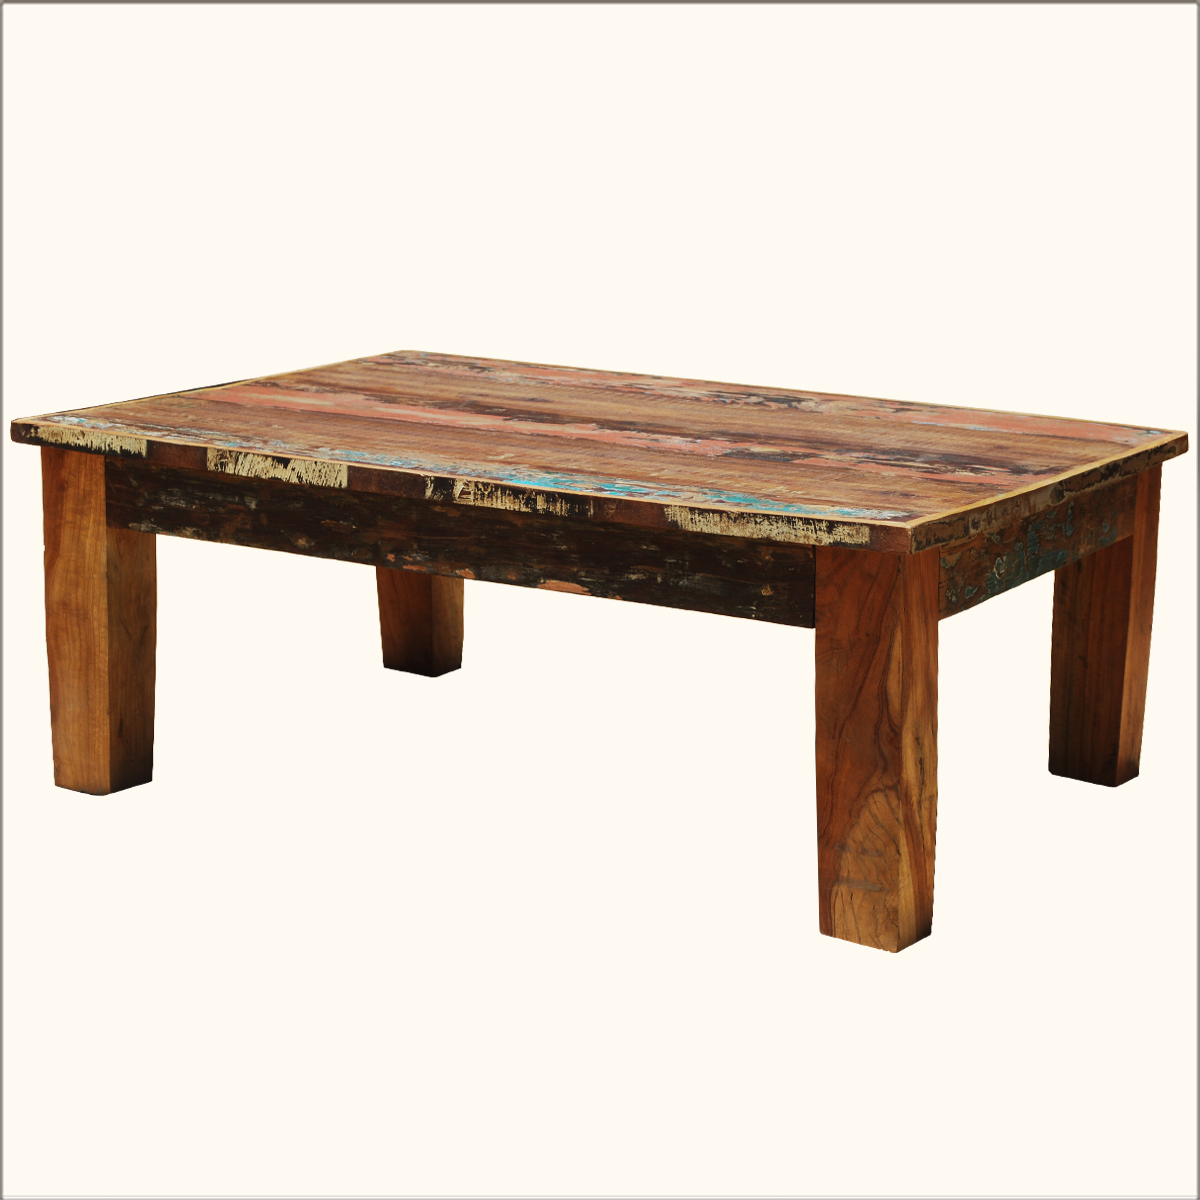 Distressed rustic reclaimed coffee table wood multi color cocktail furniture ebay Rustic wooden coffee tables